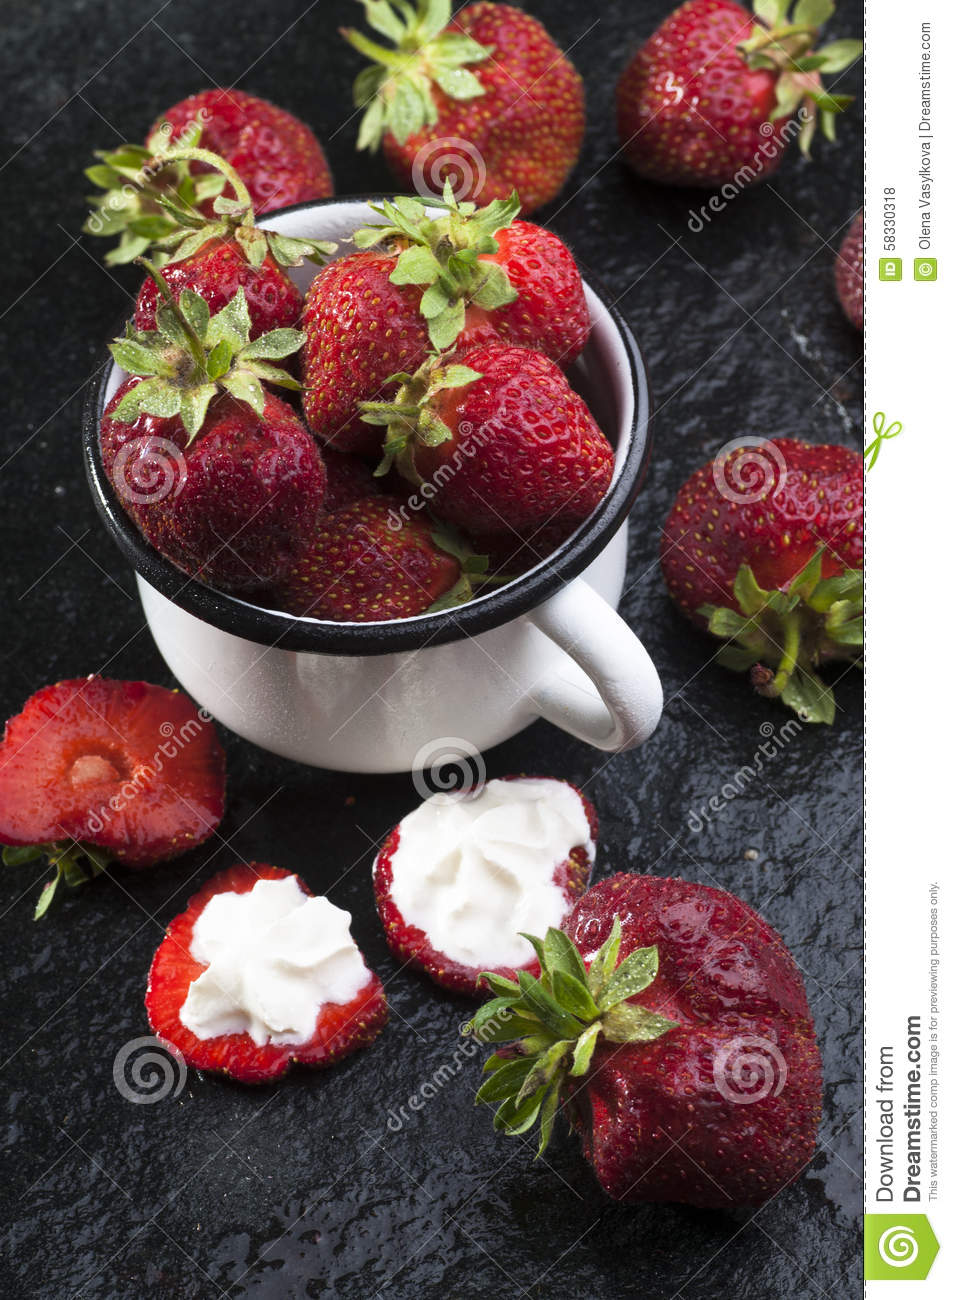 Mug with fresh strawberries